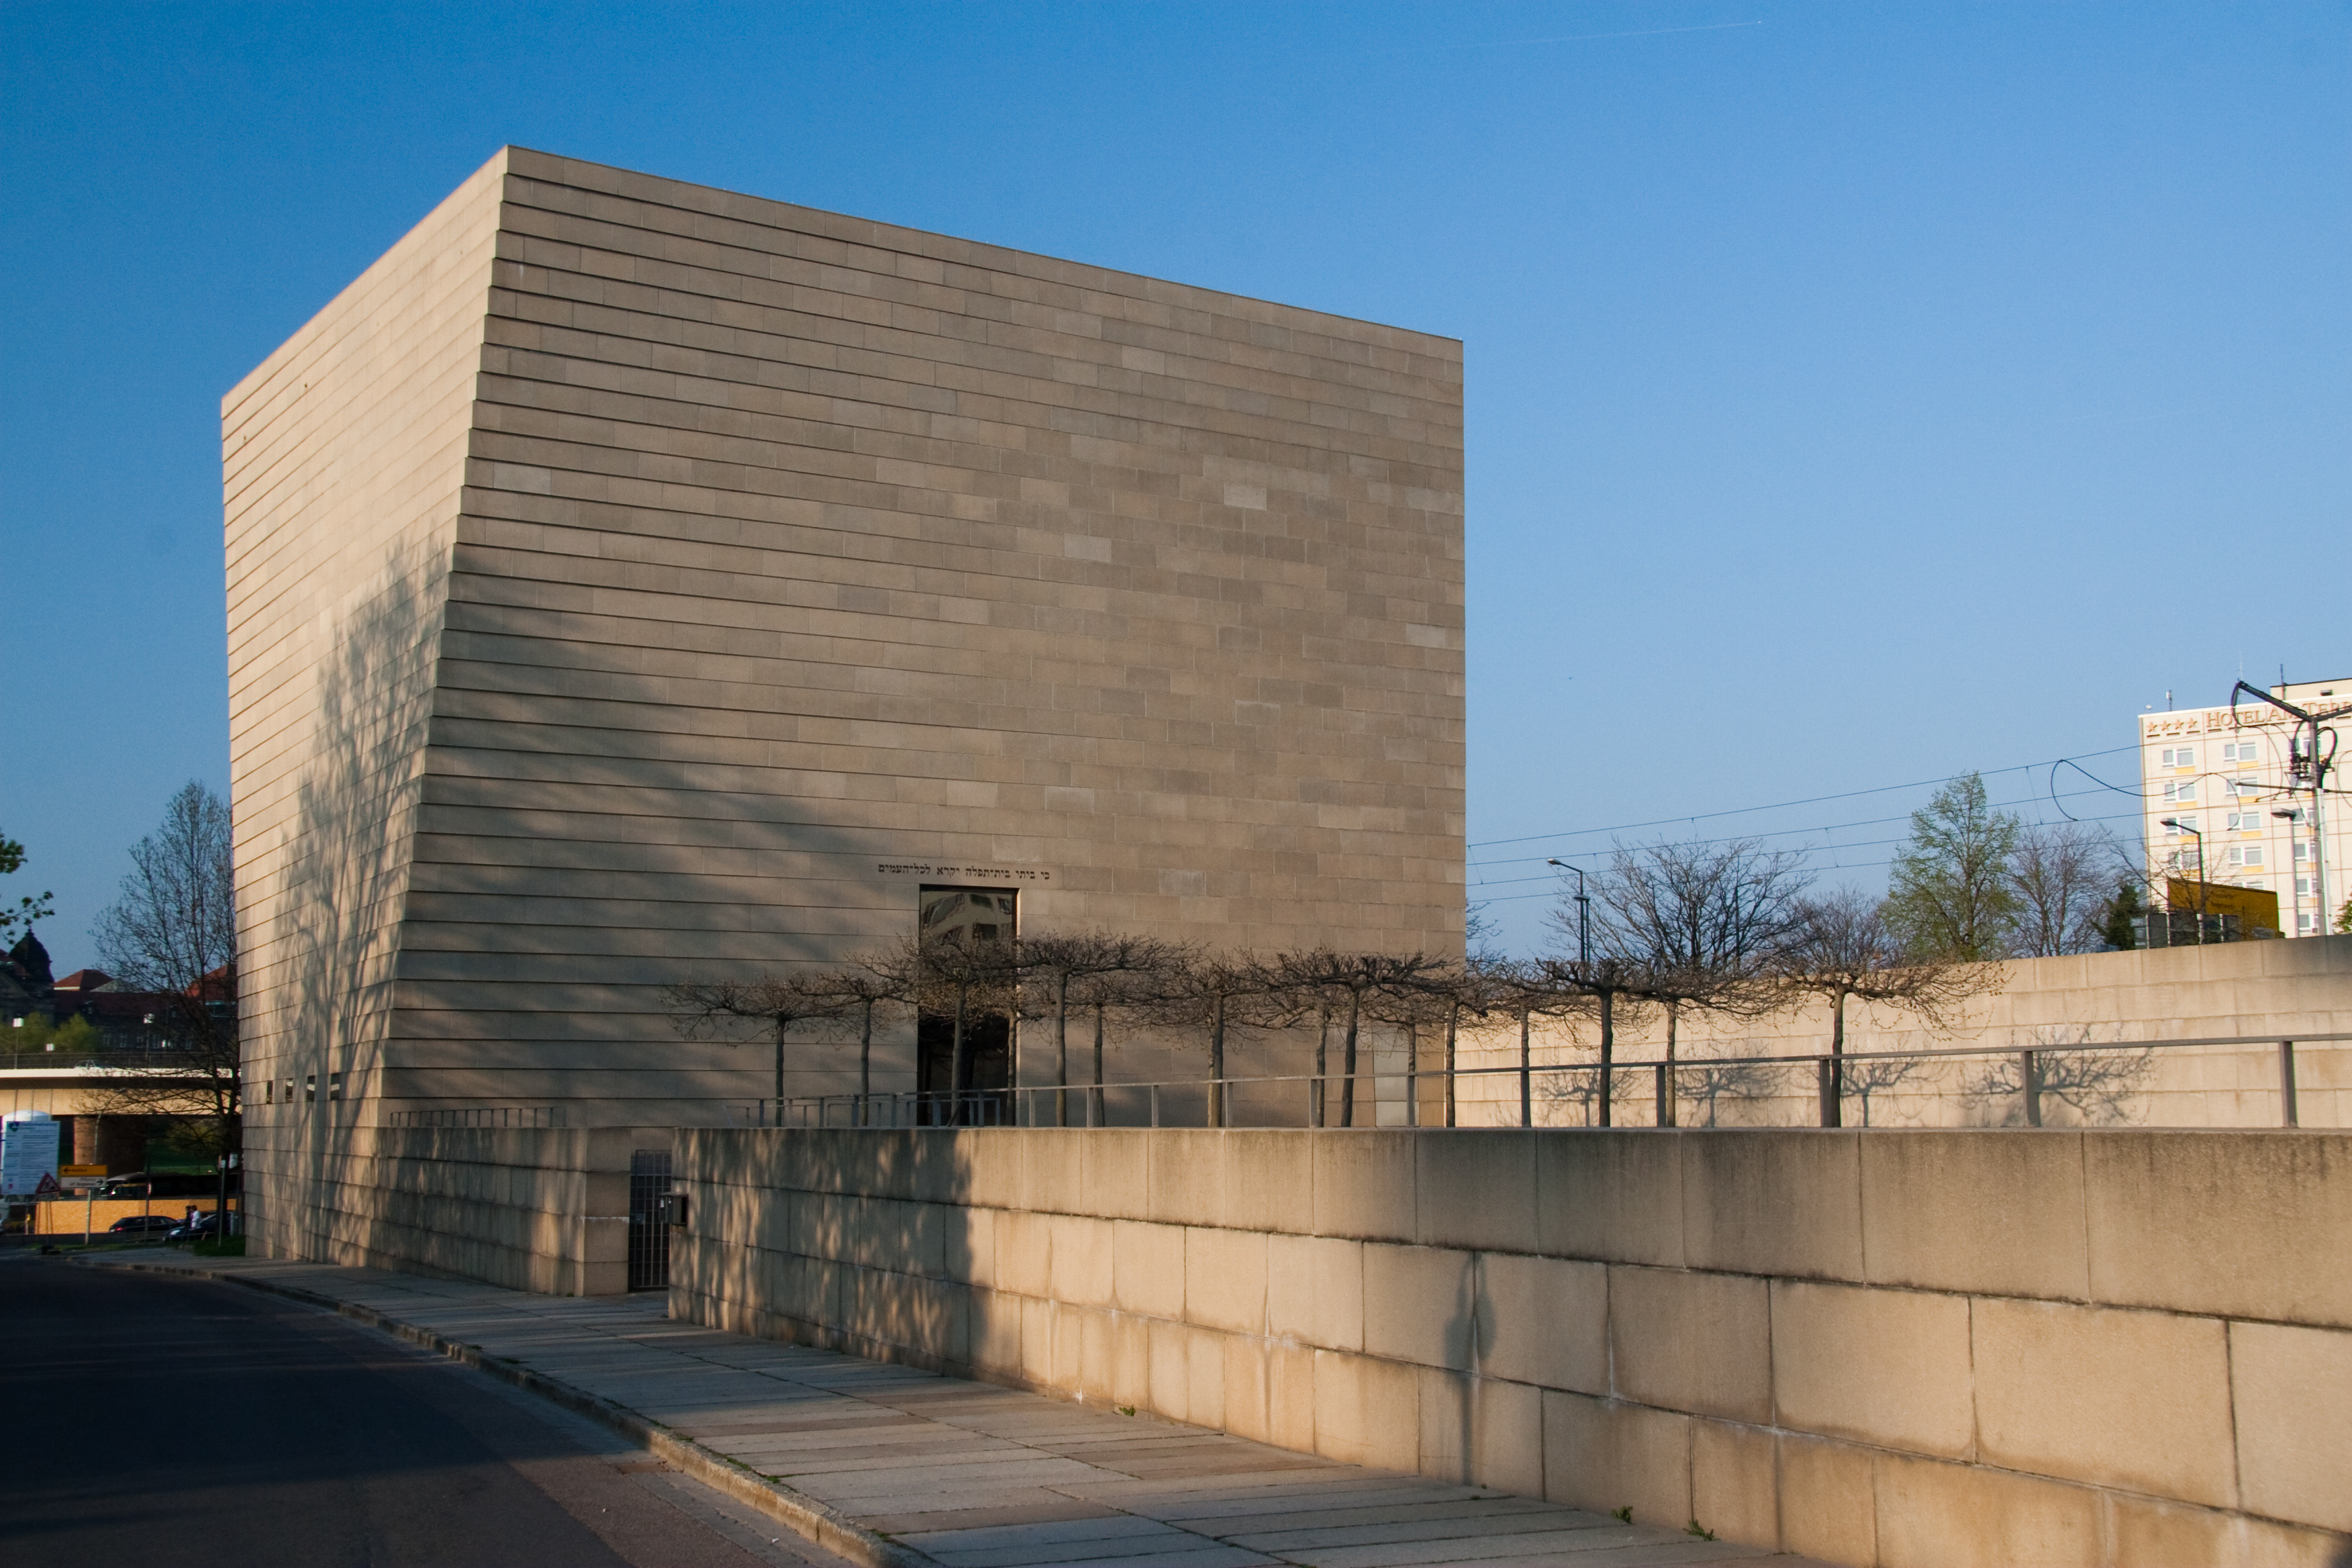 Neue Synagoge (Dresden) - Wikiwand size: 3504 x 2336 post ID: 2 File size: 0 B